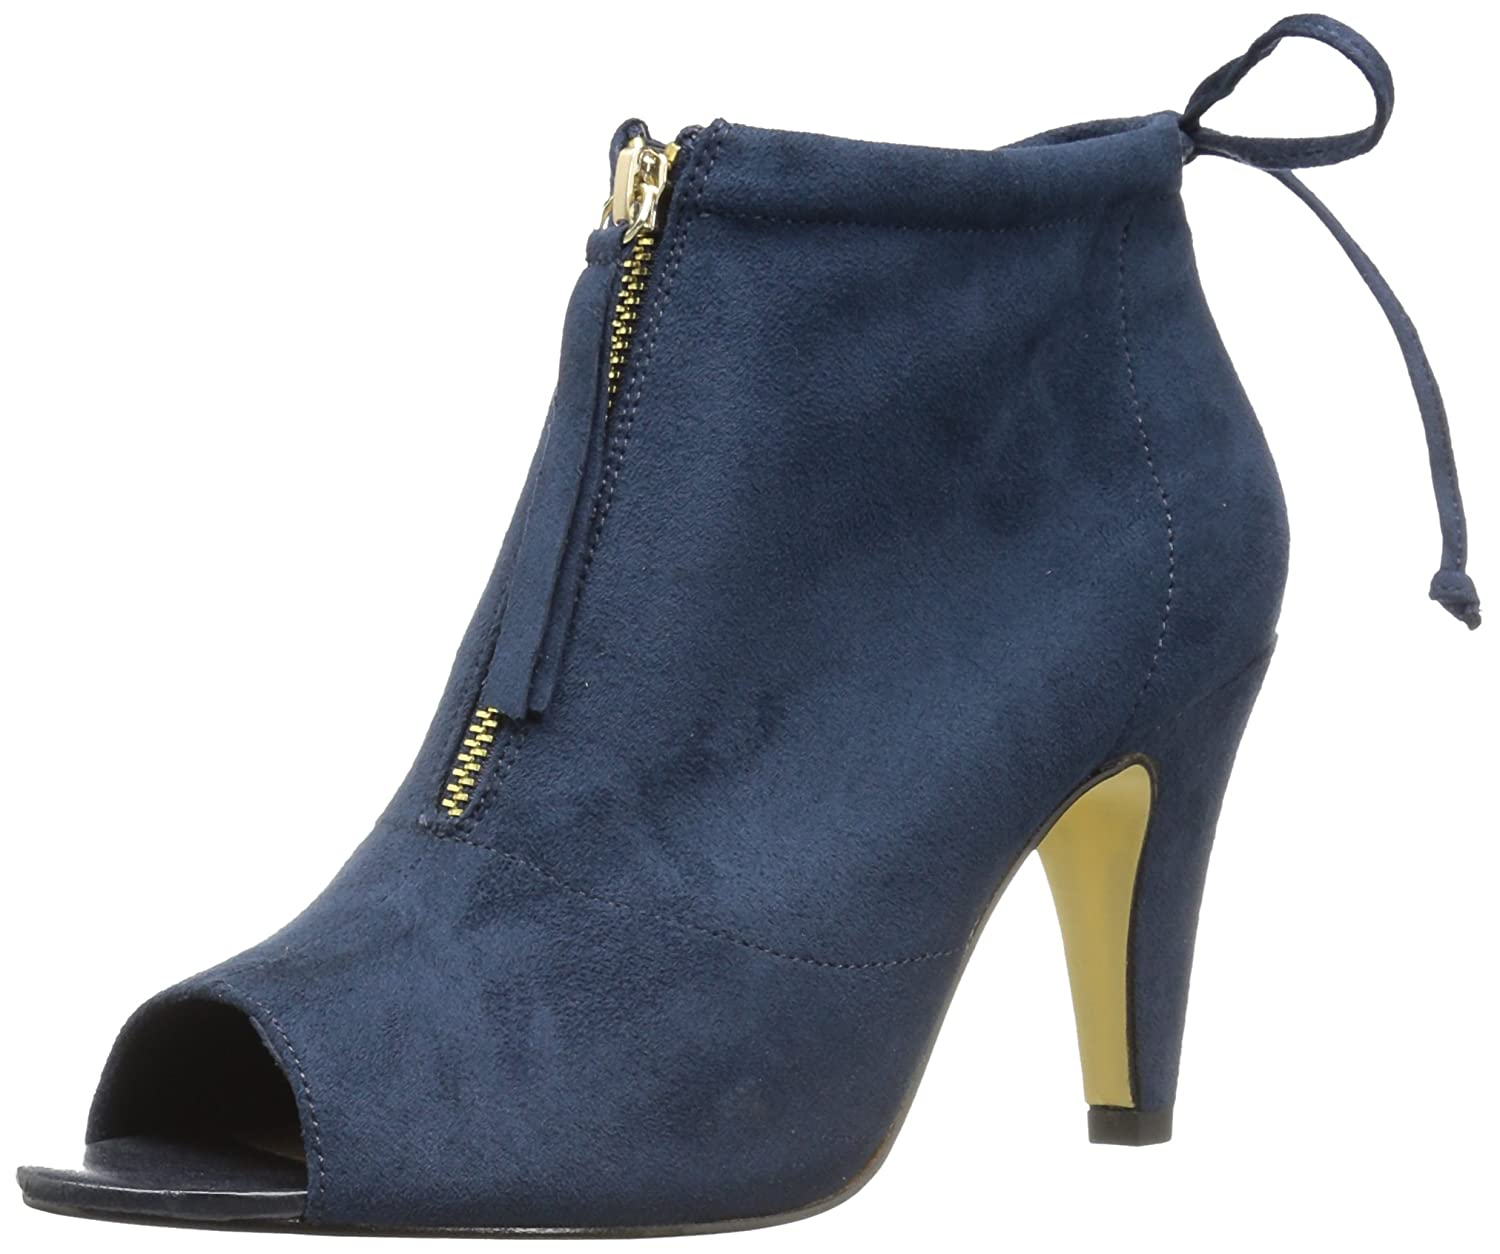 Bella Vita Women's Nicky Ii Ankle Bootie B073NQ2LVJ 7 2W US|Navy Super Suede